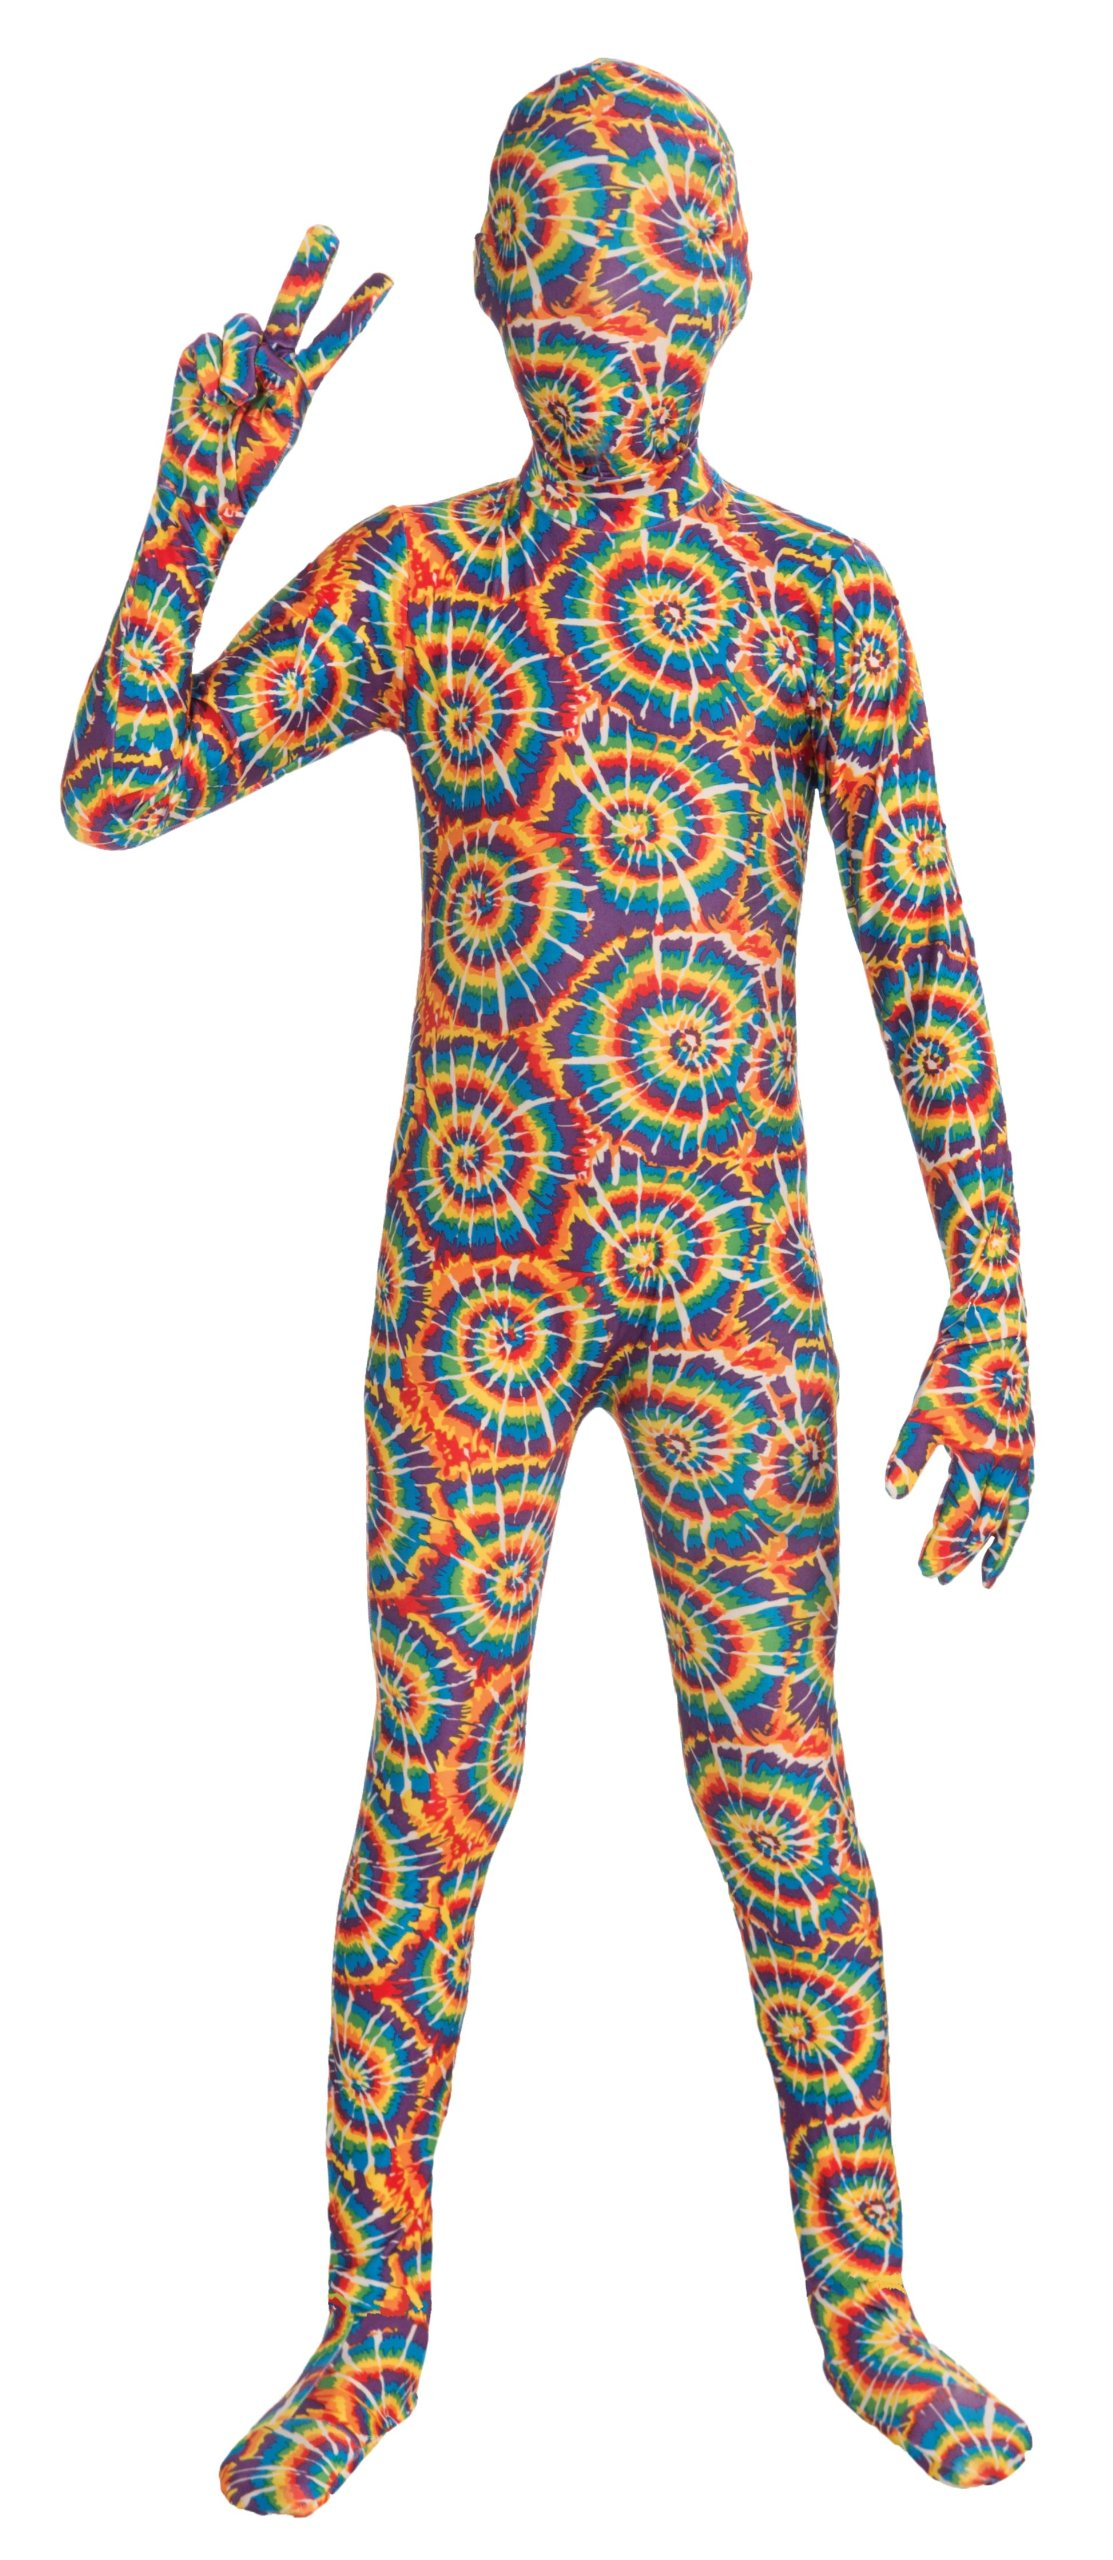 - 81OdpleGAeL - Forum Novelties I'm Invisible Costume Stretch Body Suit, Tie Dye, Child Large